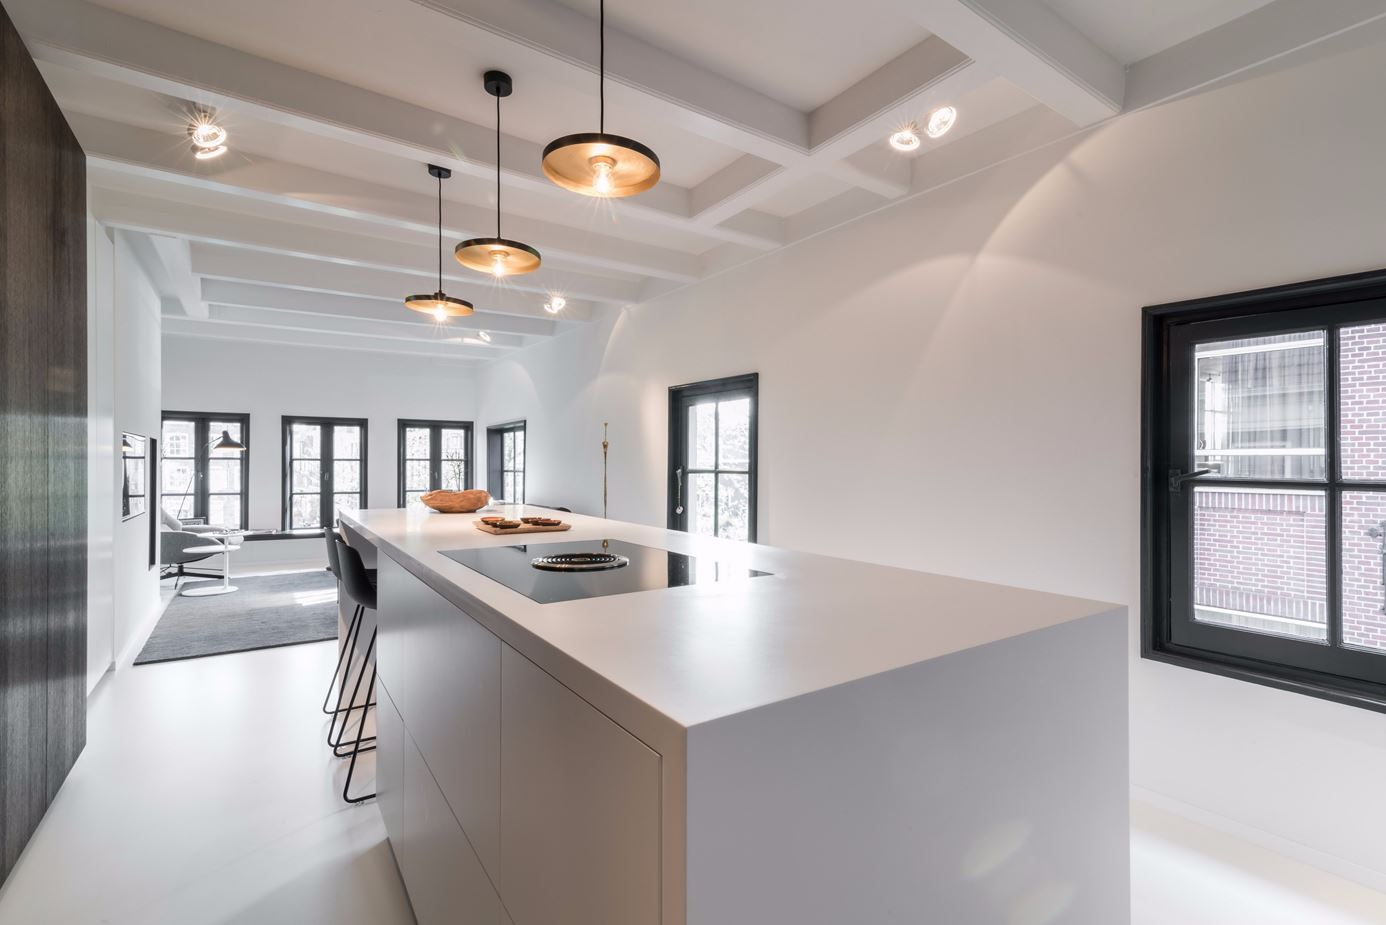 From any direction, the design of the space is clean and open.